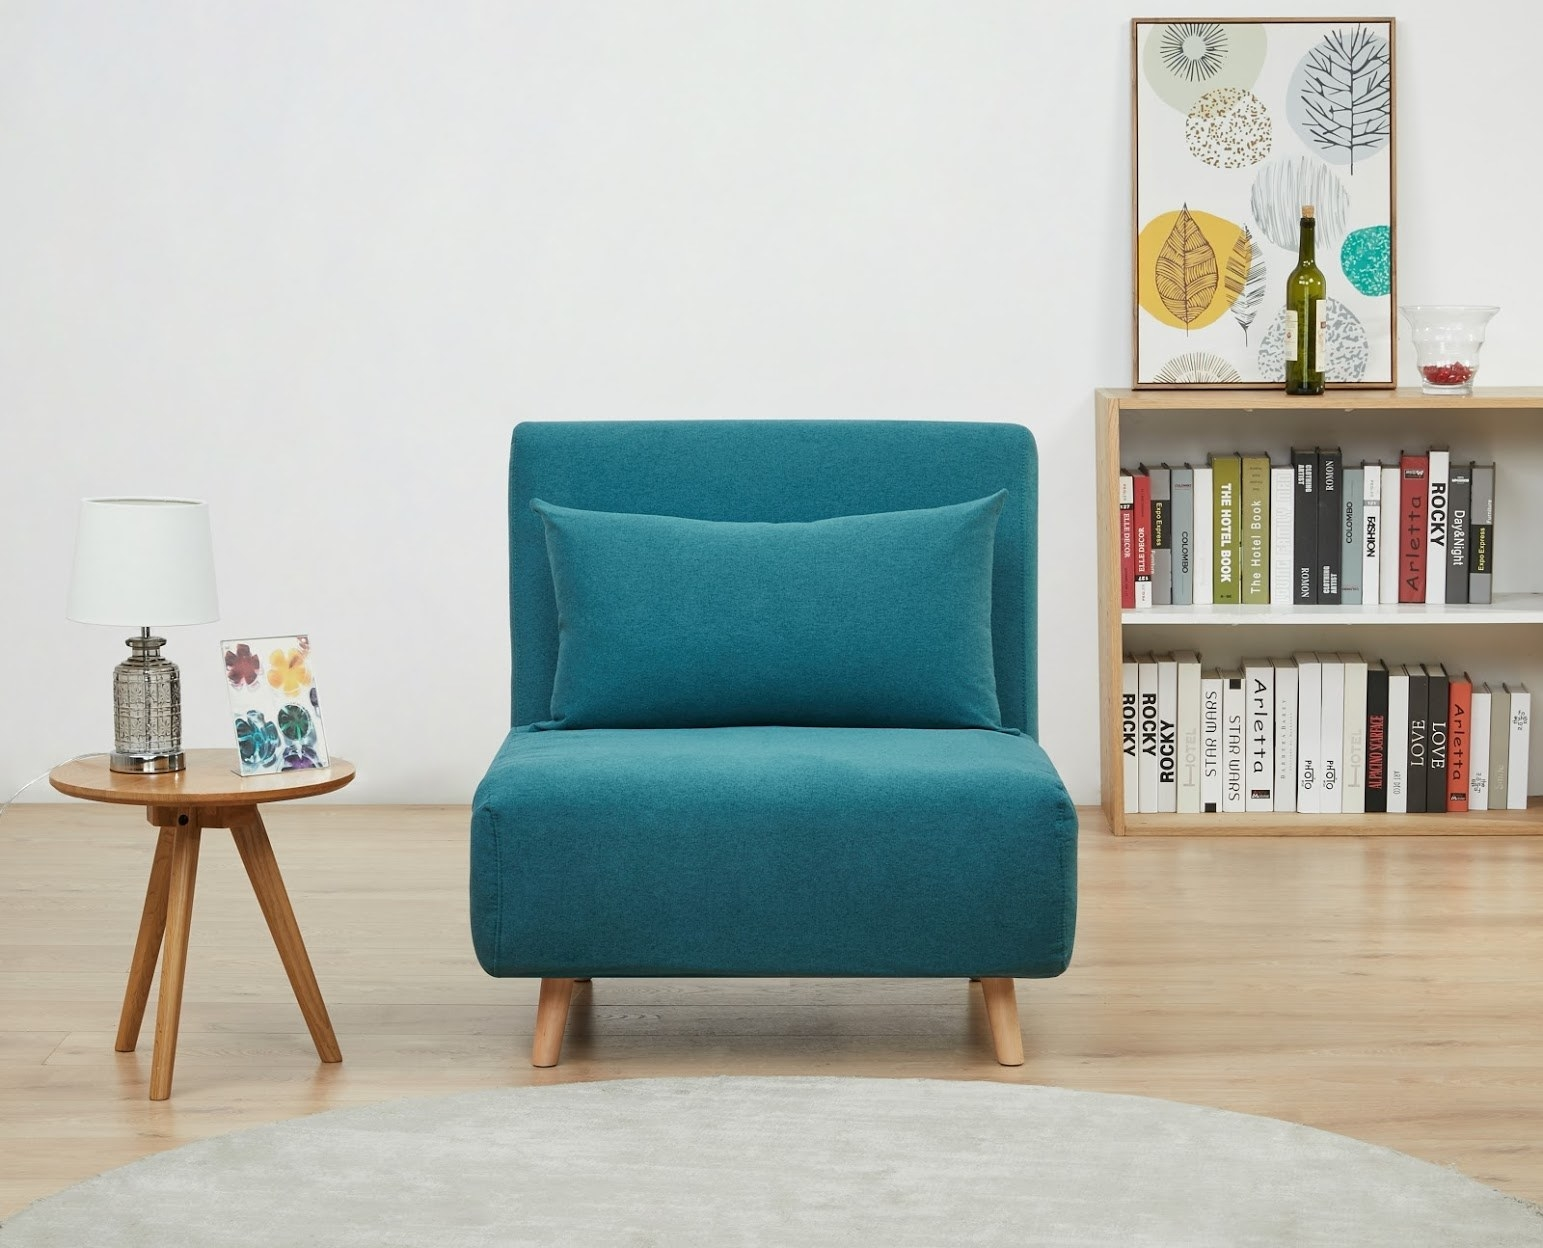 the blue accent chair with wooden legs